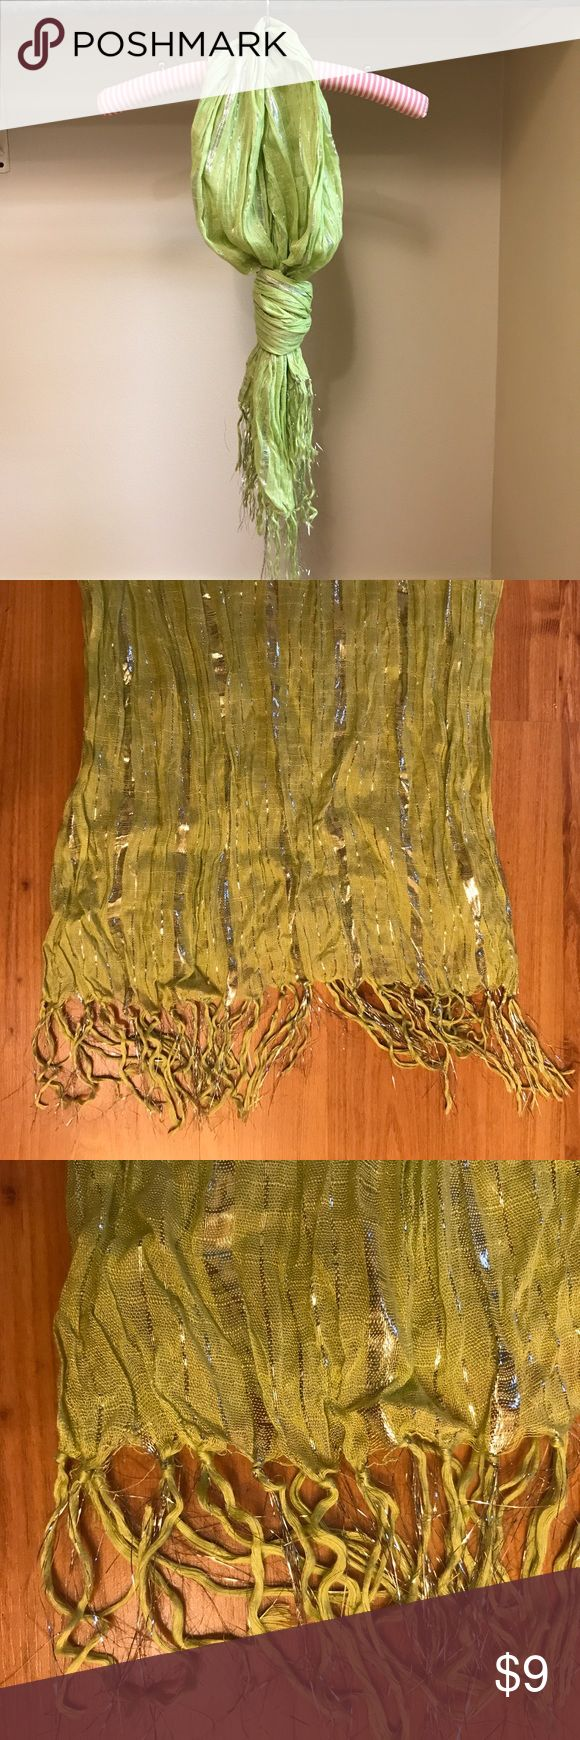 Lime and metallic silver scarf Lime and metallic silver scarf. Gently worn and in good condition. Super soft and lightweight! Accessories Scarves & Wraps